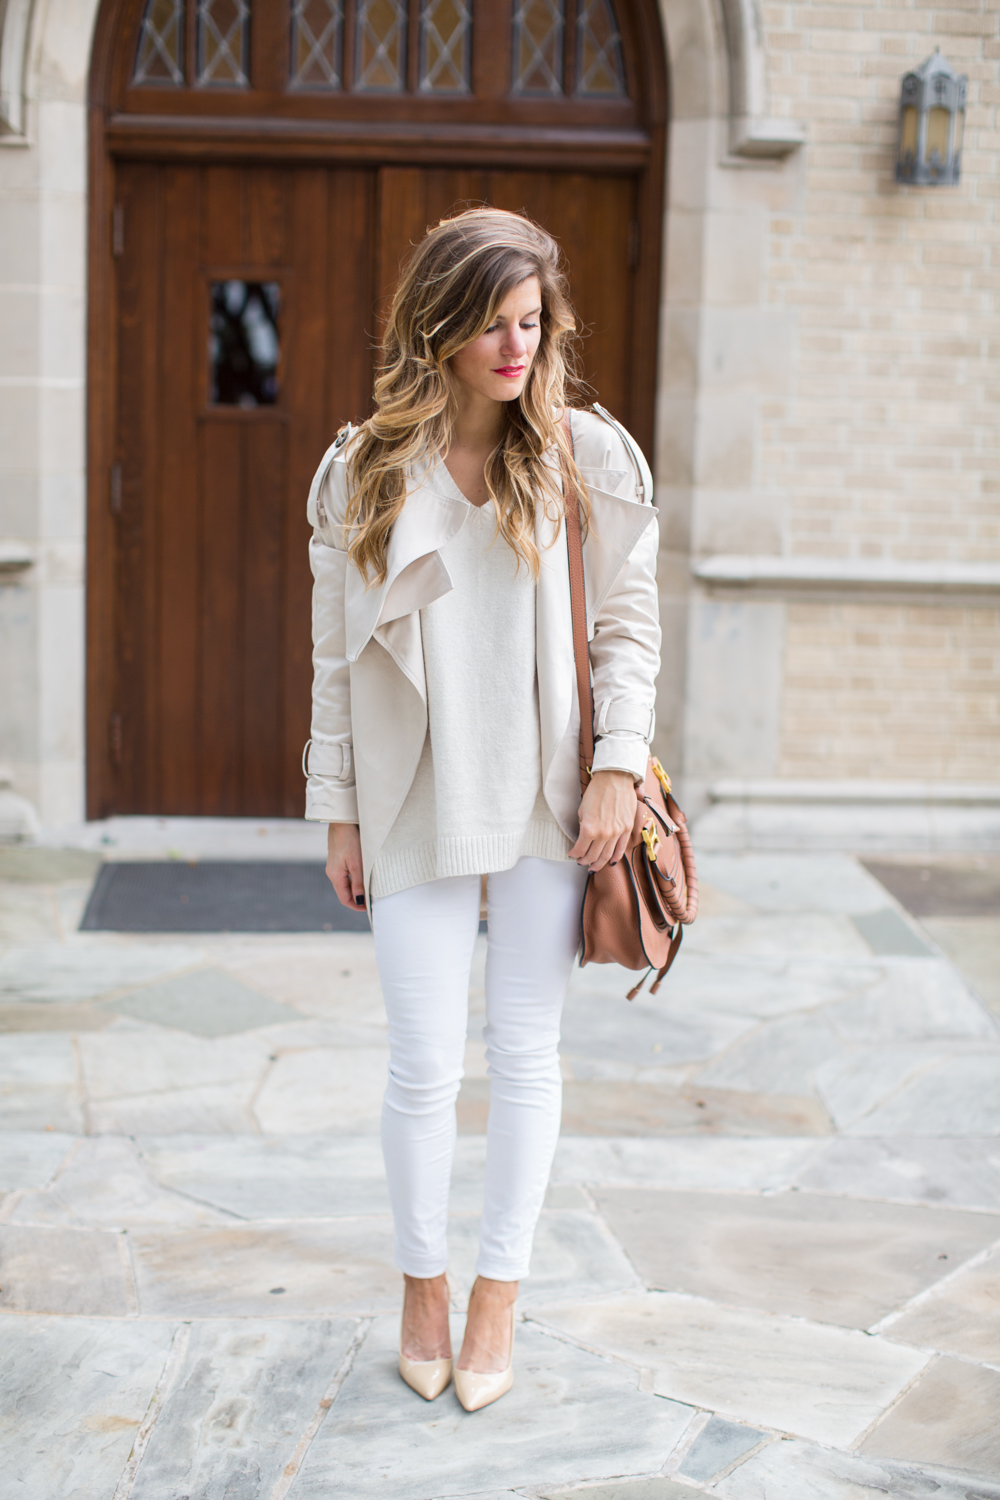 Winter White outfit with white jeans cream sweater chloe bag nude patent pumps